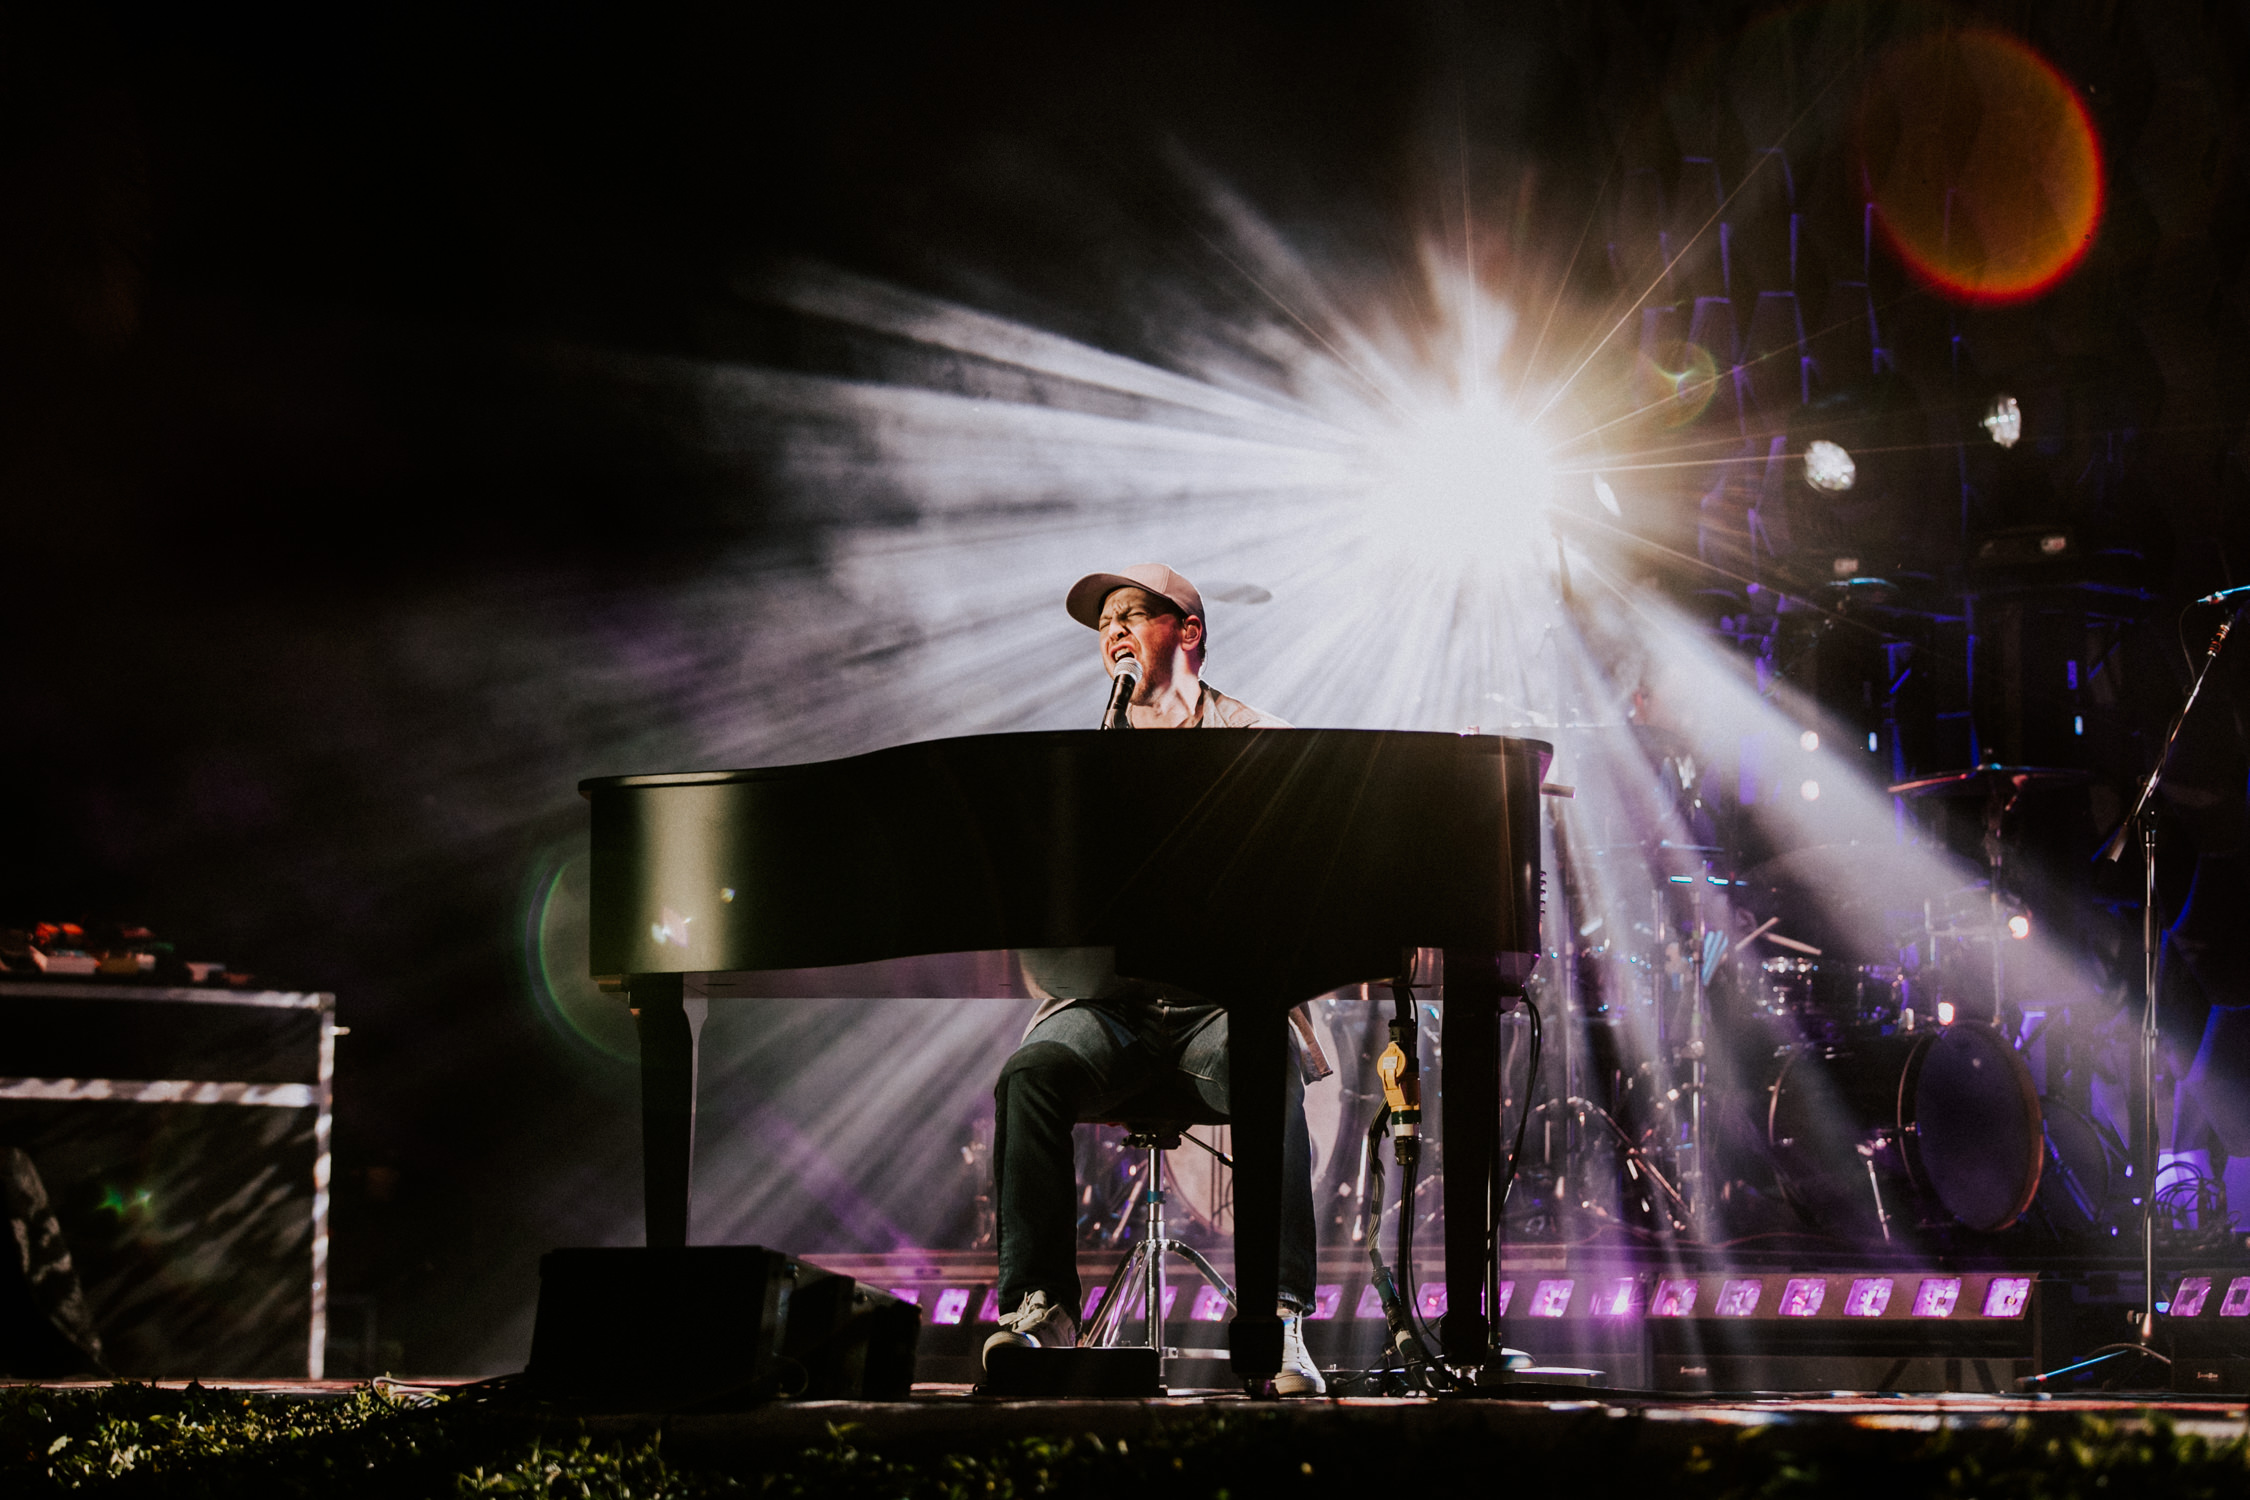 gavin-degraw-starburst-gobo-light-concert-AnnaLeeMedia